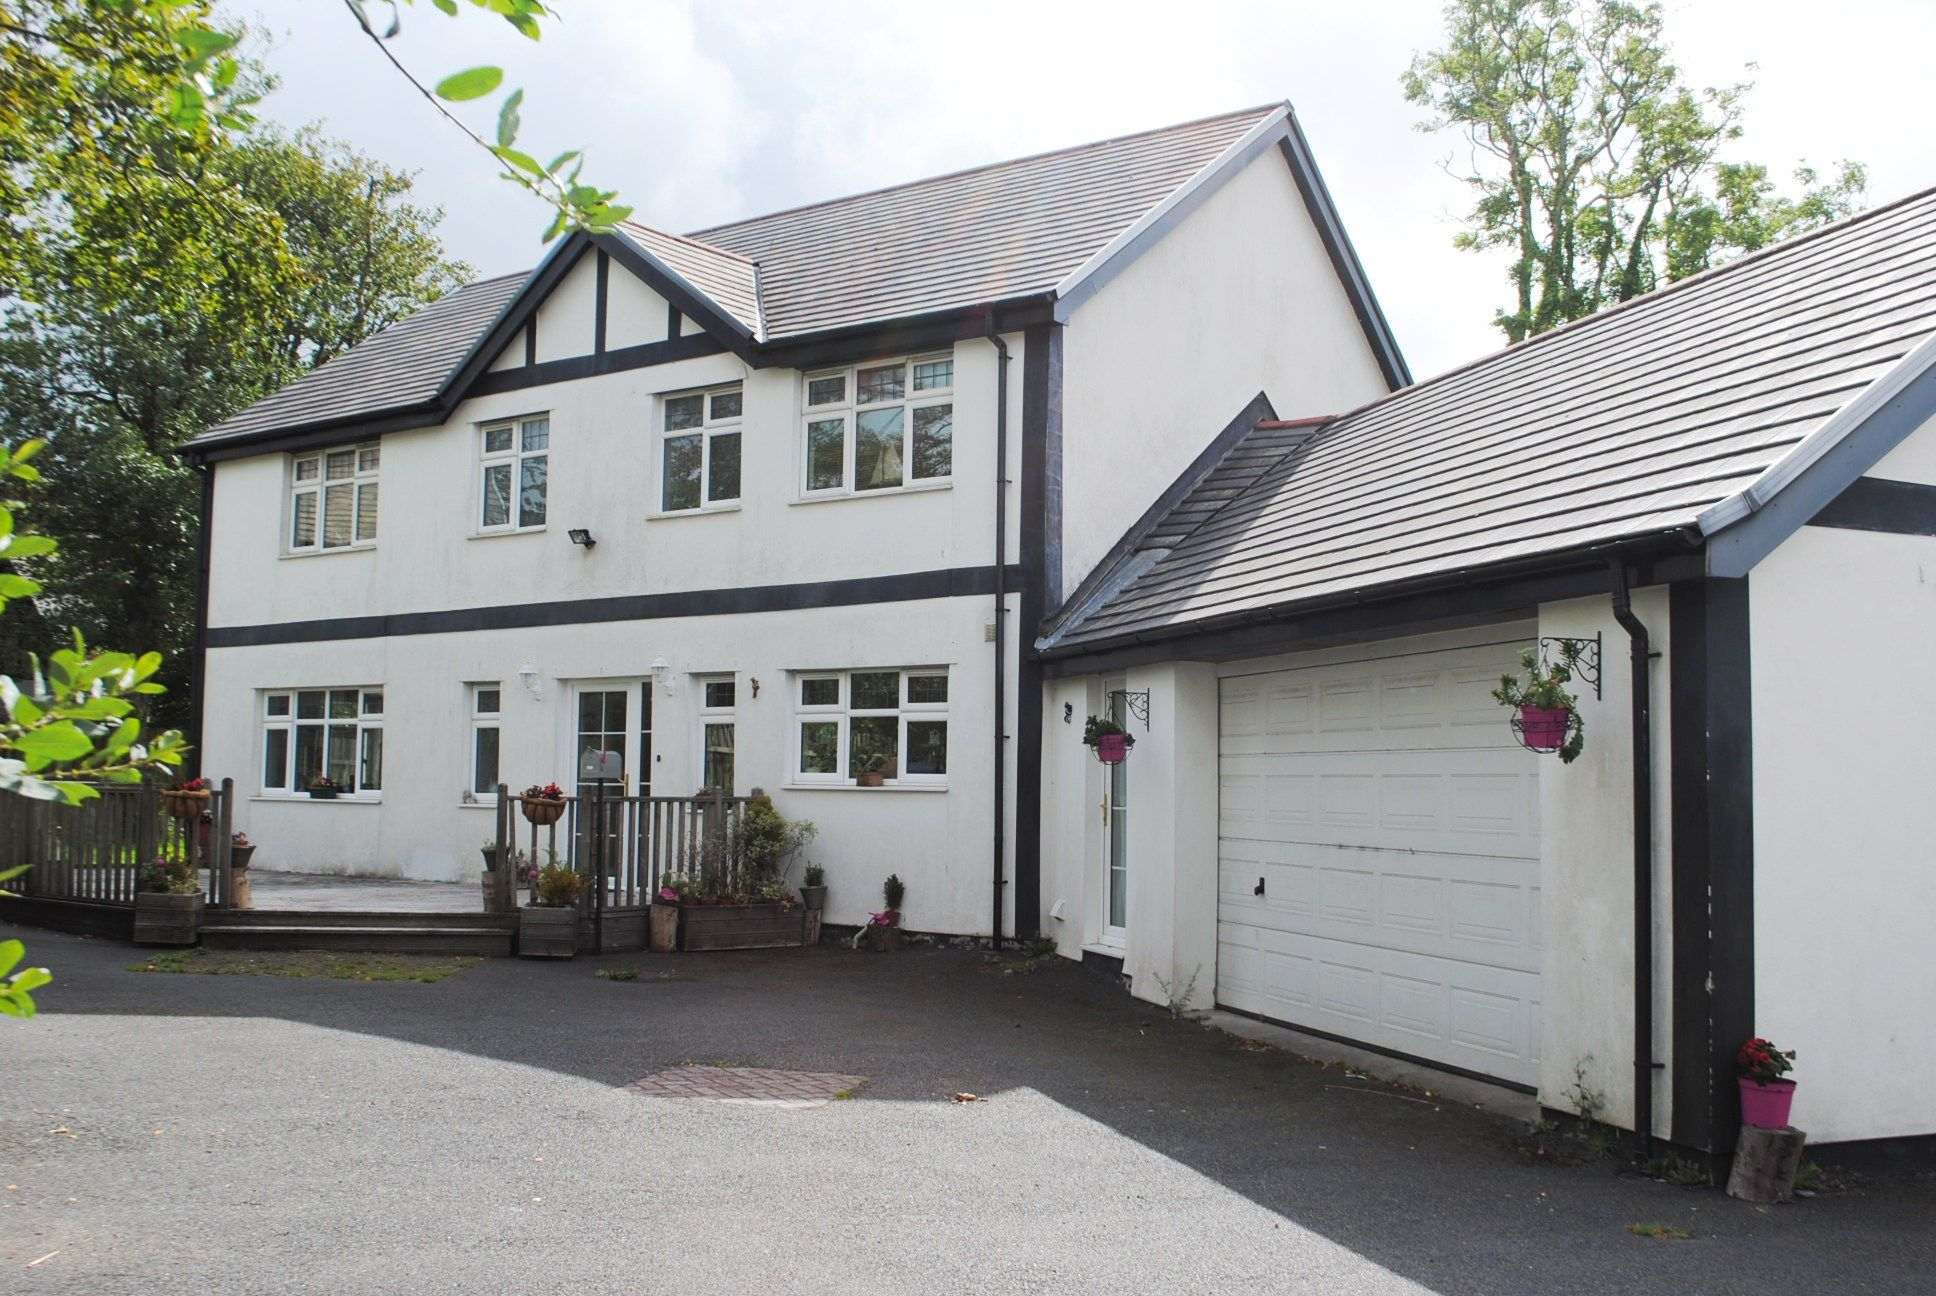 4 bedroom detached house Sold in Mount Murray - Photograph 1